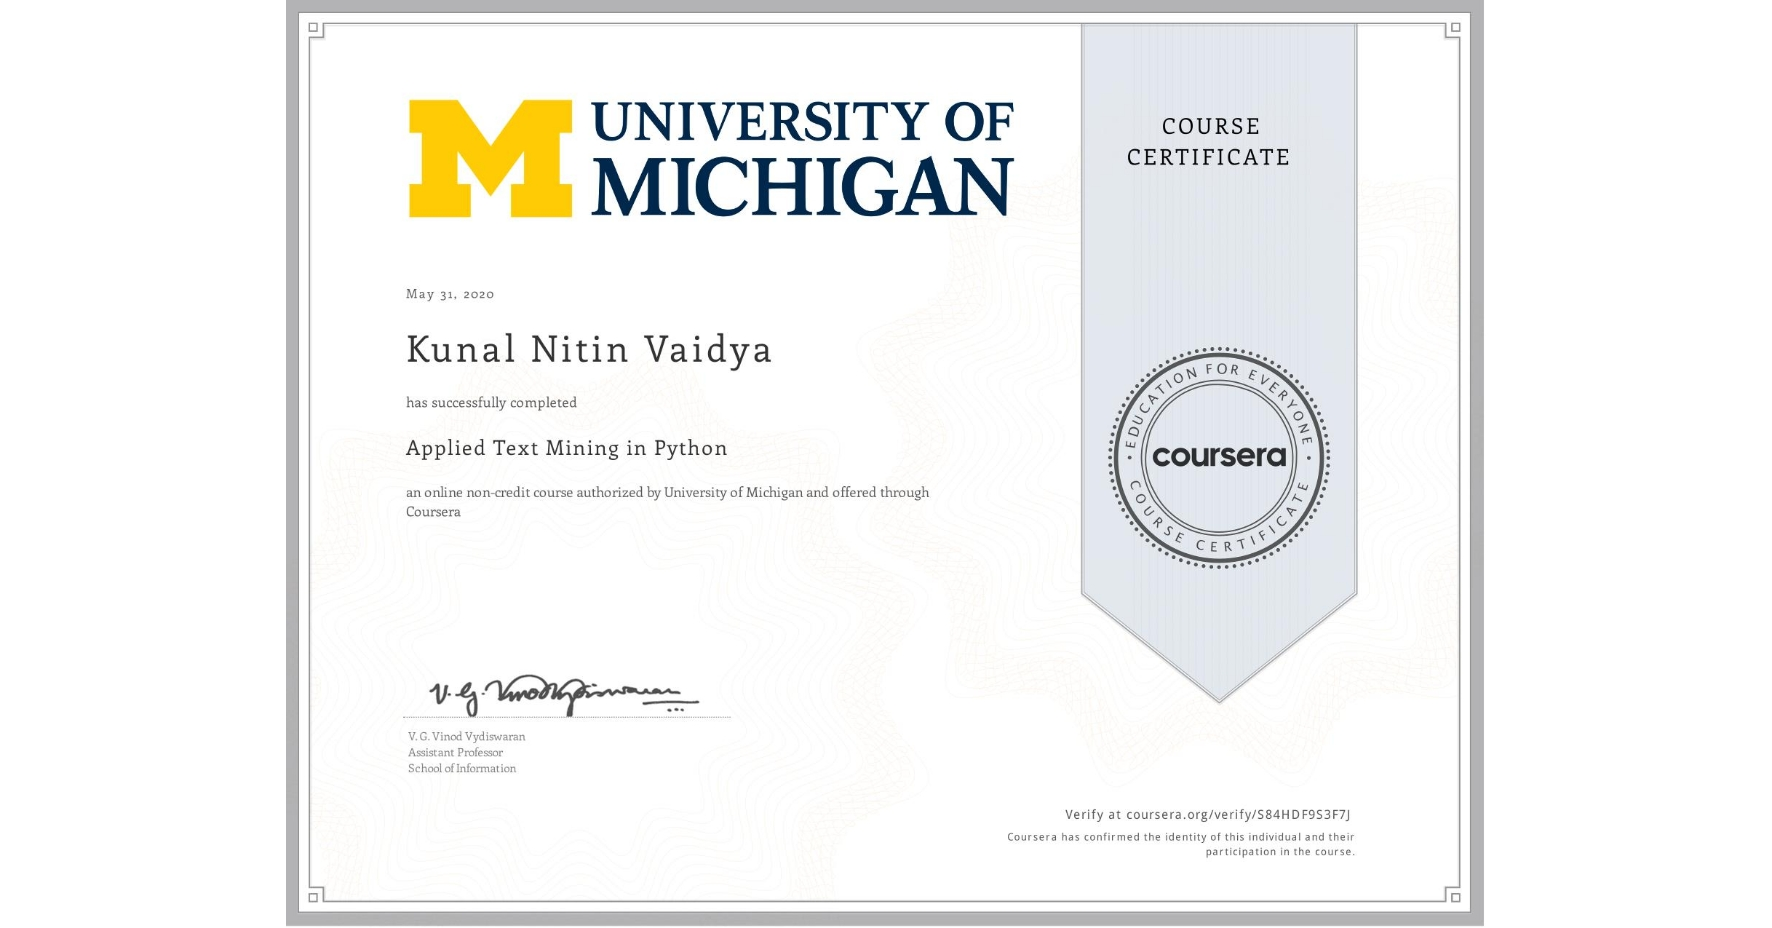 View certificate for Kunal Nitin Vaidya, Applied Text Mining in Python, an online non-credit course authorized by University of Michigan and offered through Coursera